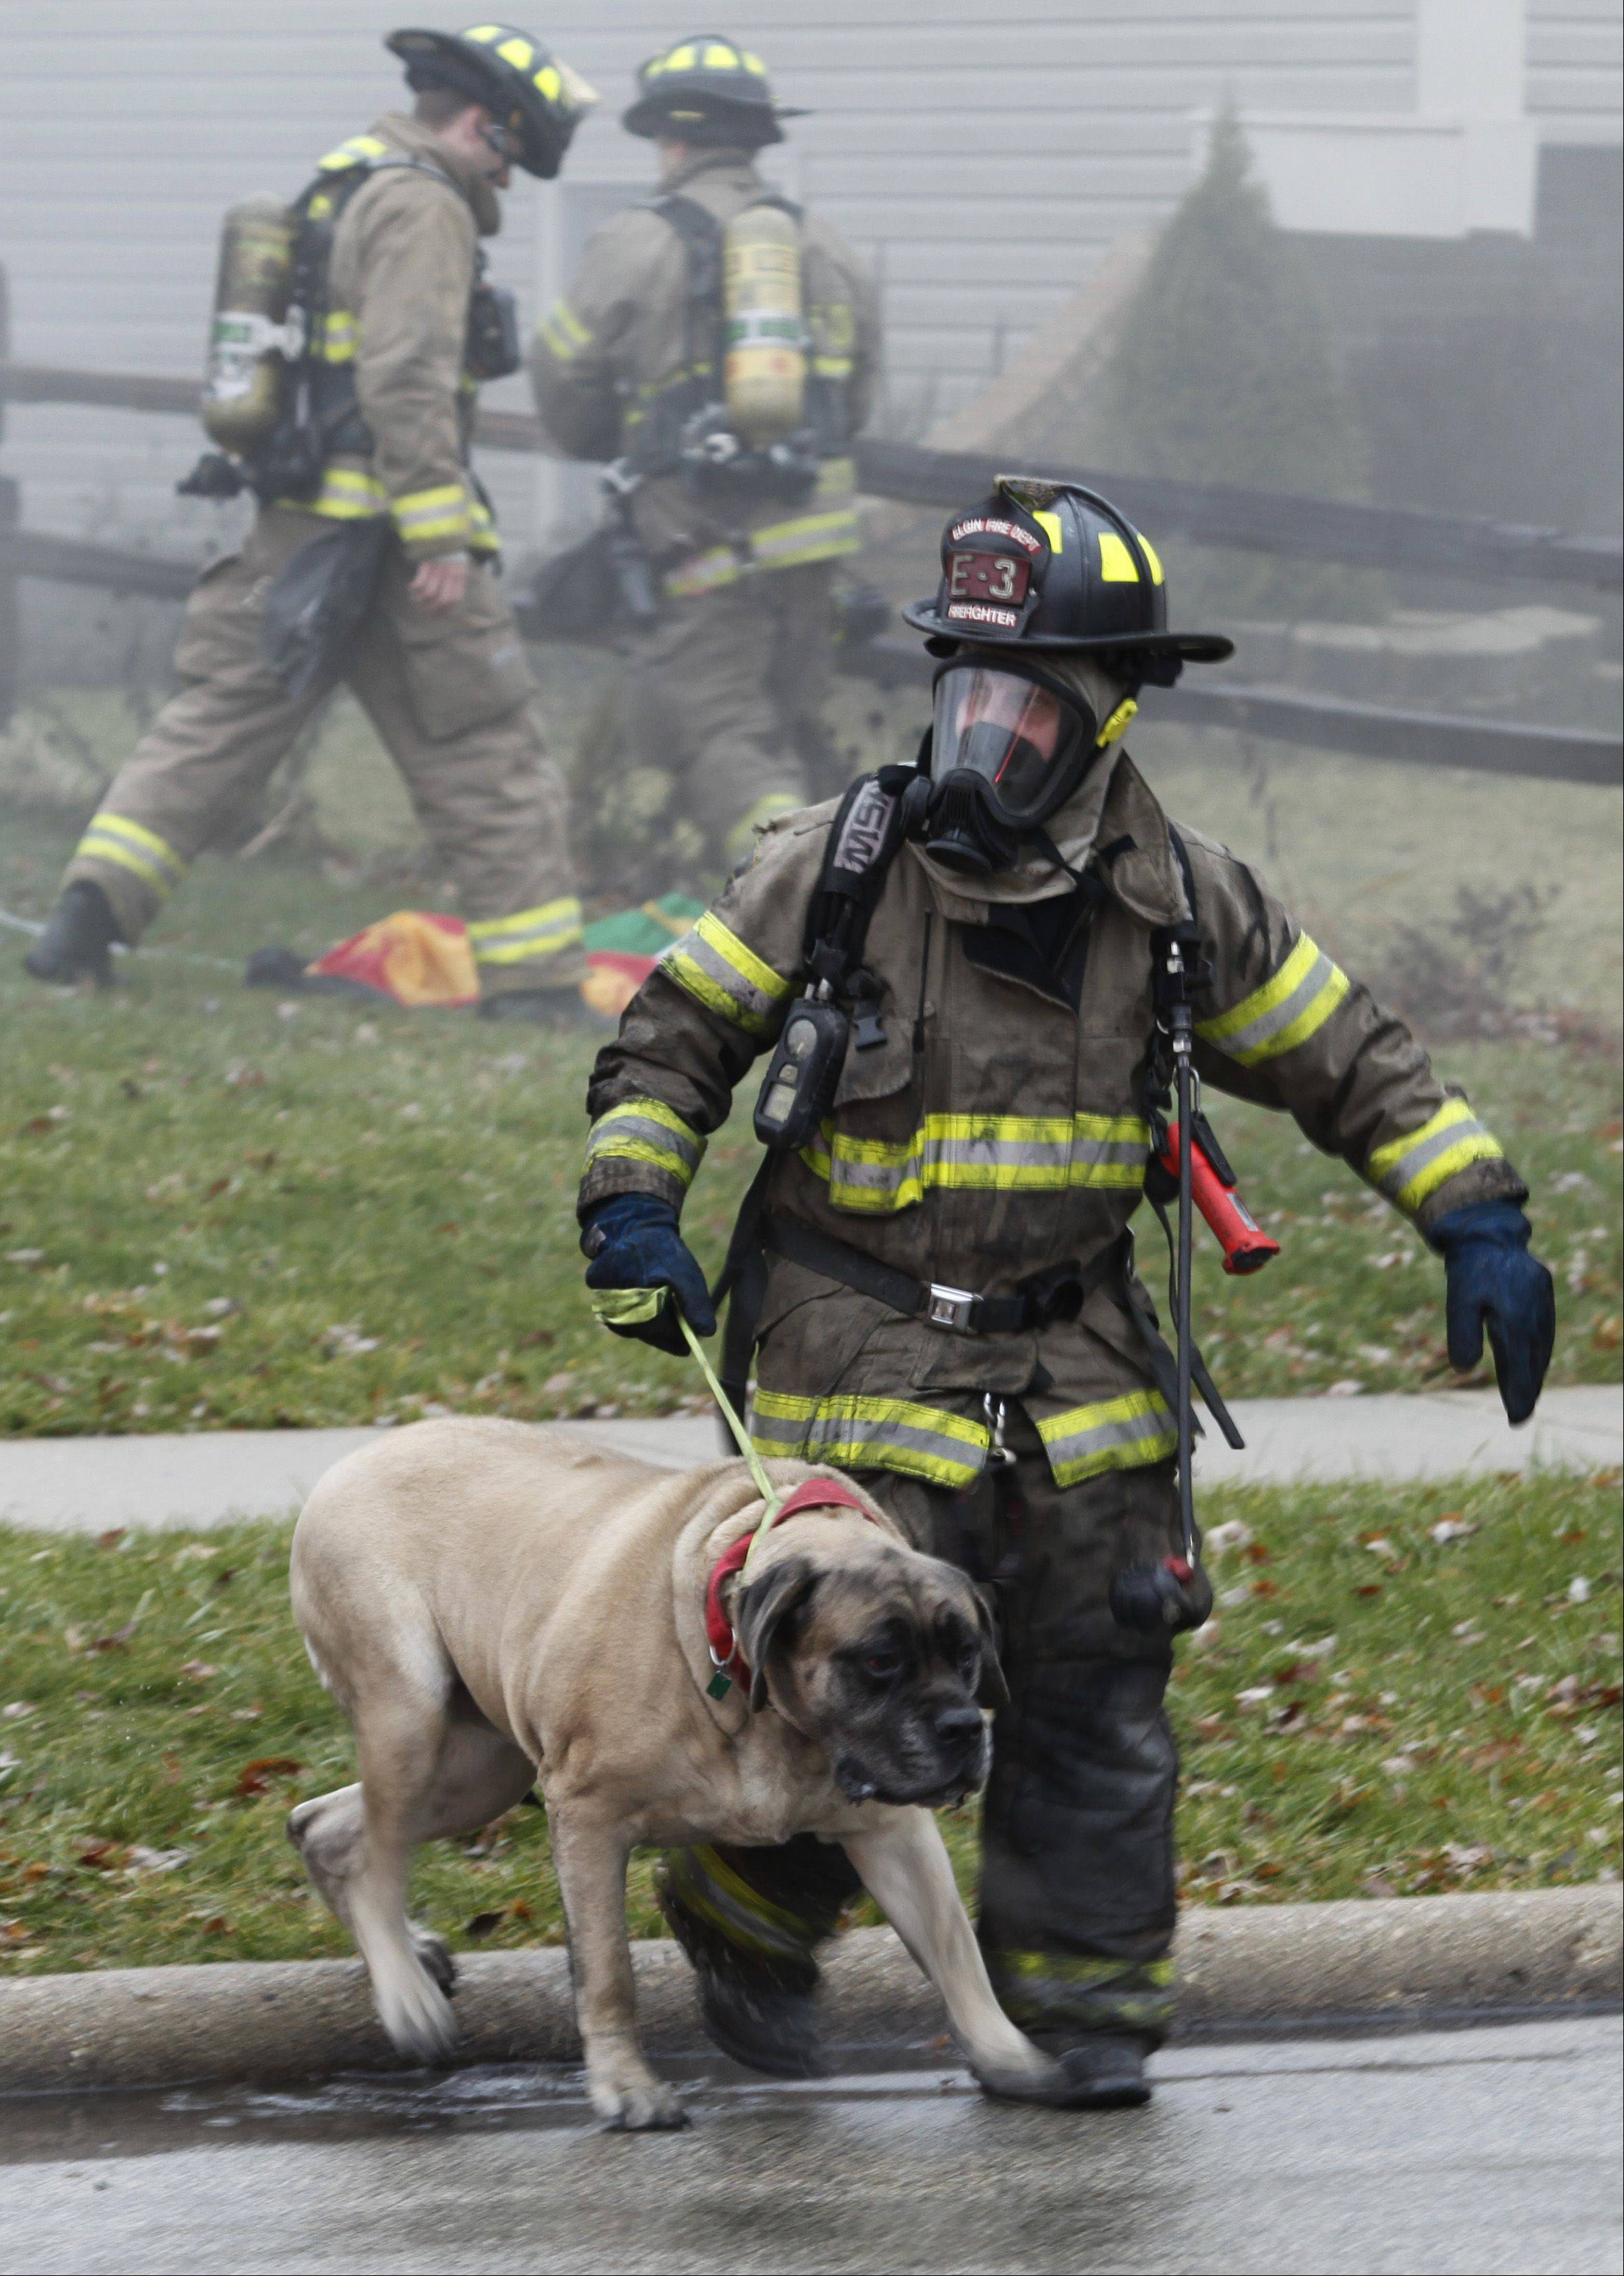 A firefighter brings out one of the family dogs after rescuing it from the burning home on Sheffield Drive in Elgin Wednesday afternoon.